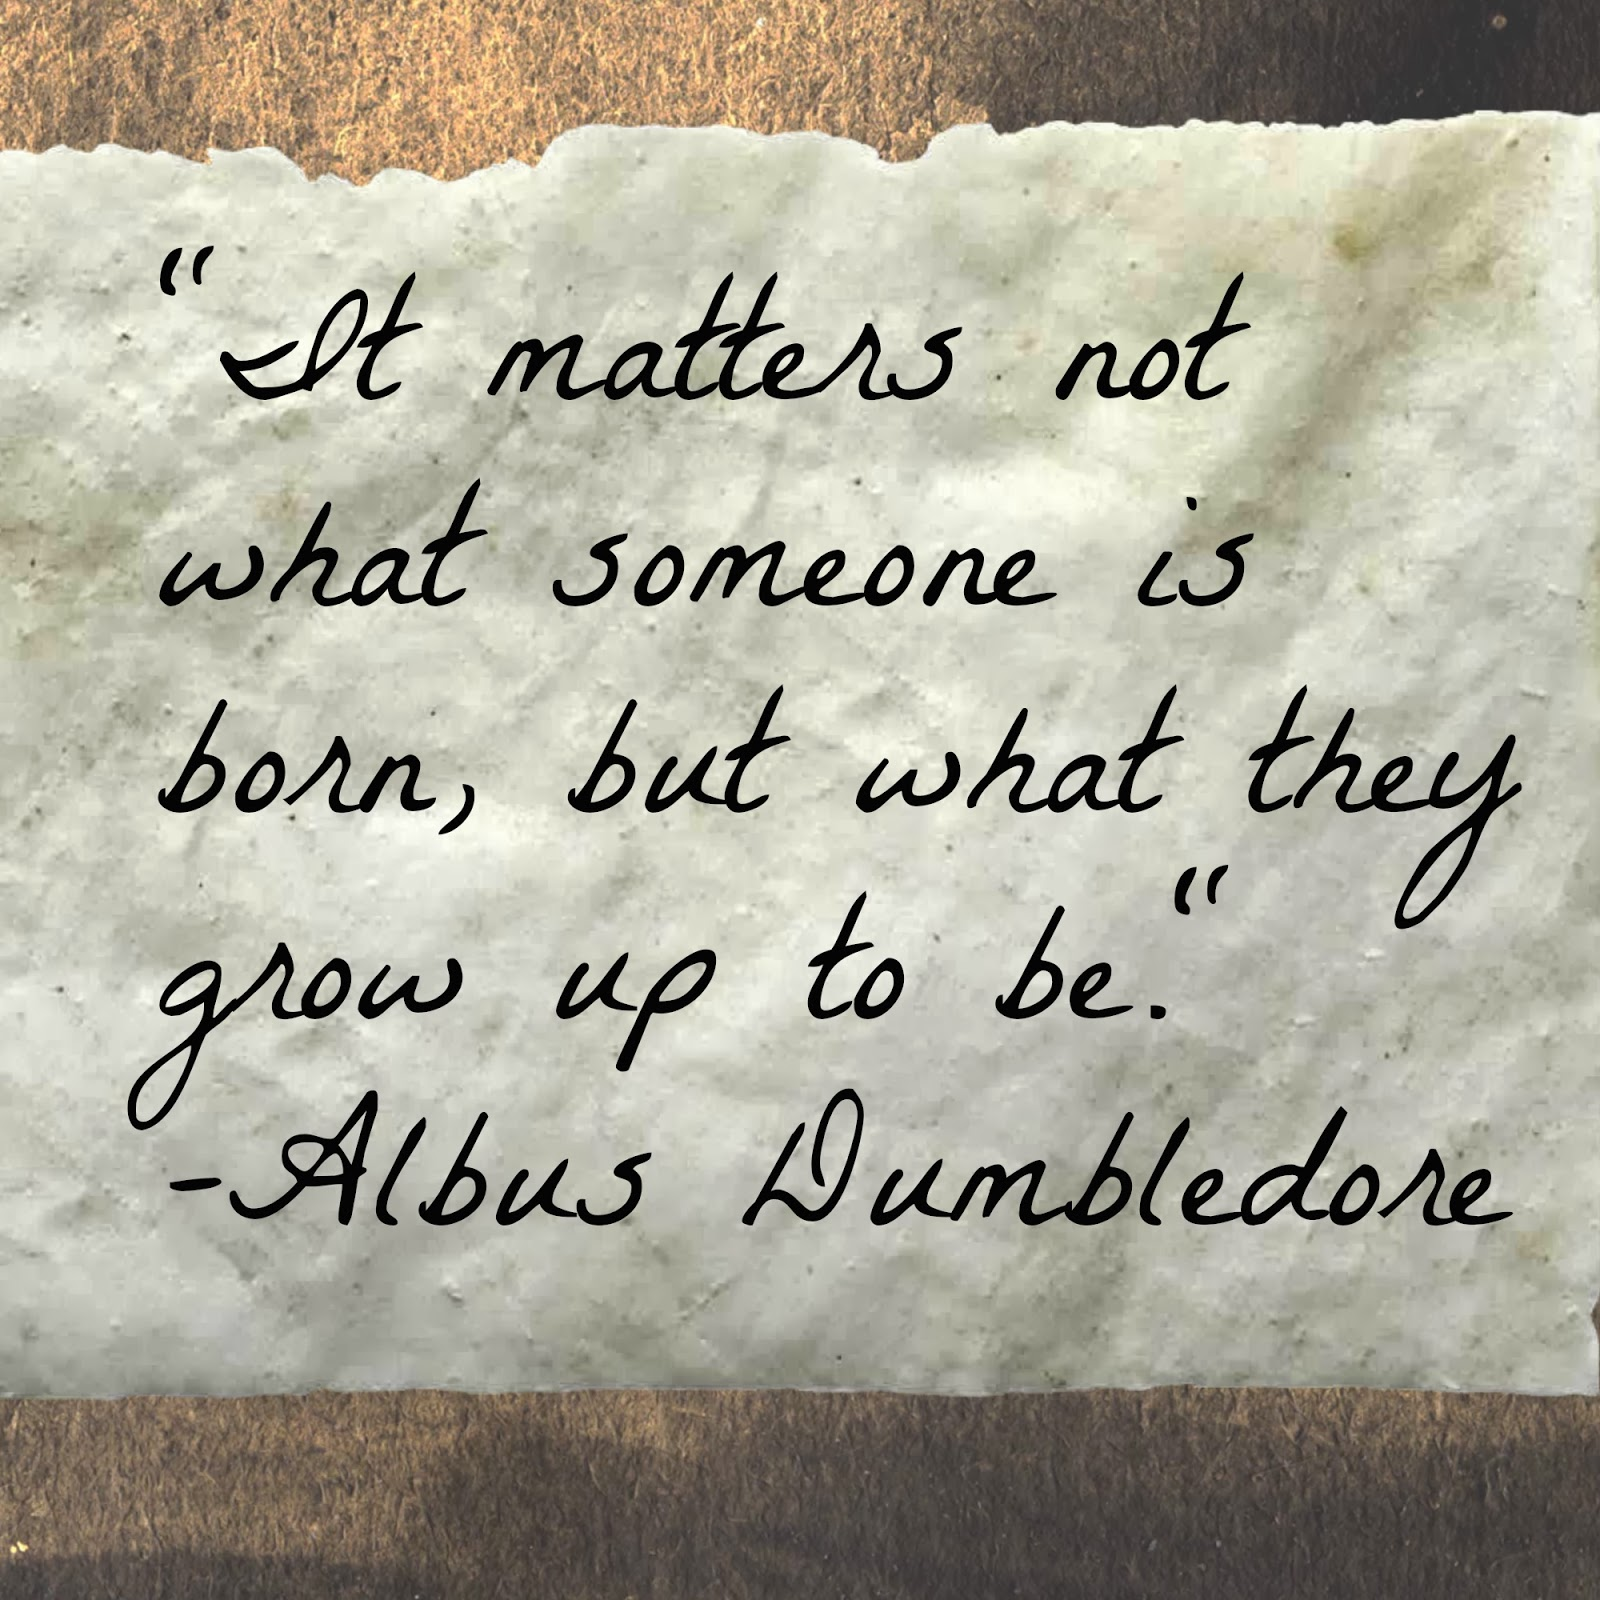 J.K. Rowling Albus Dumbledore Quote from Harry Potter